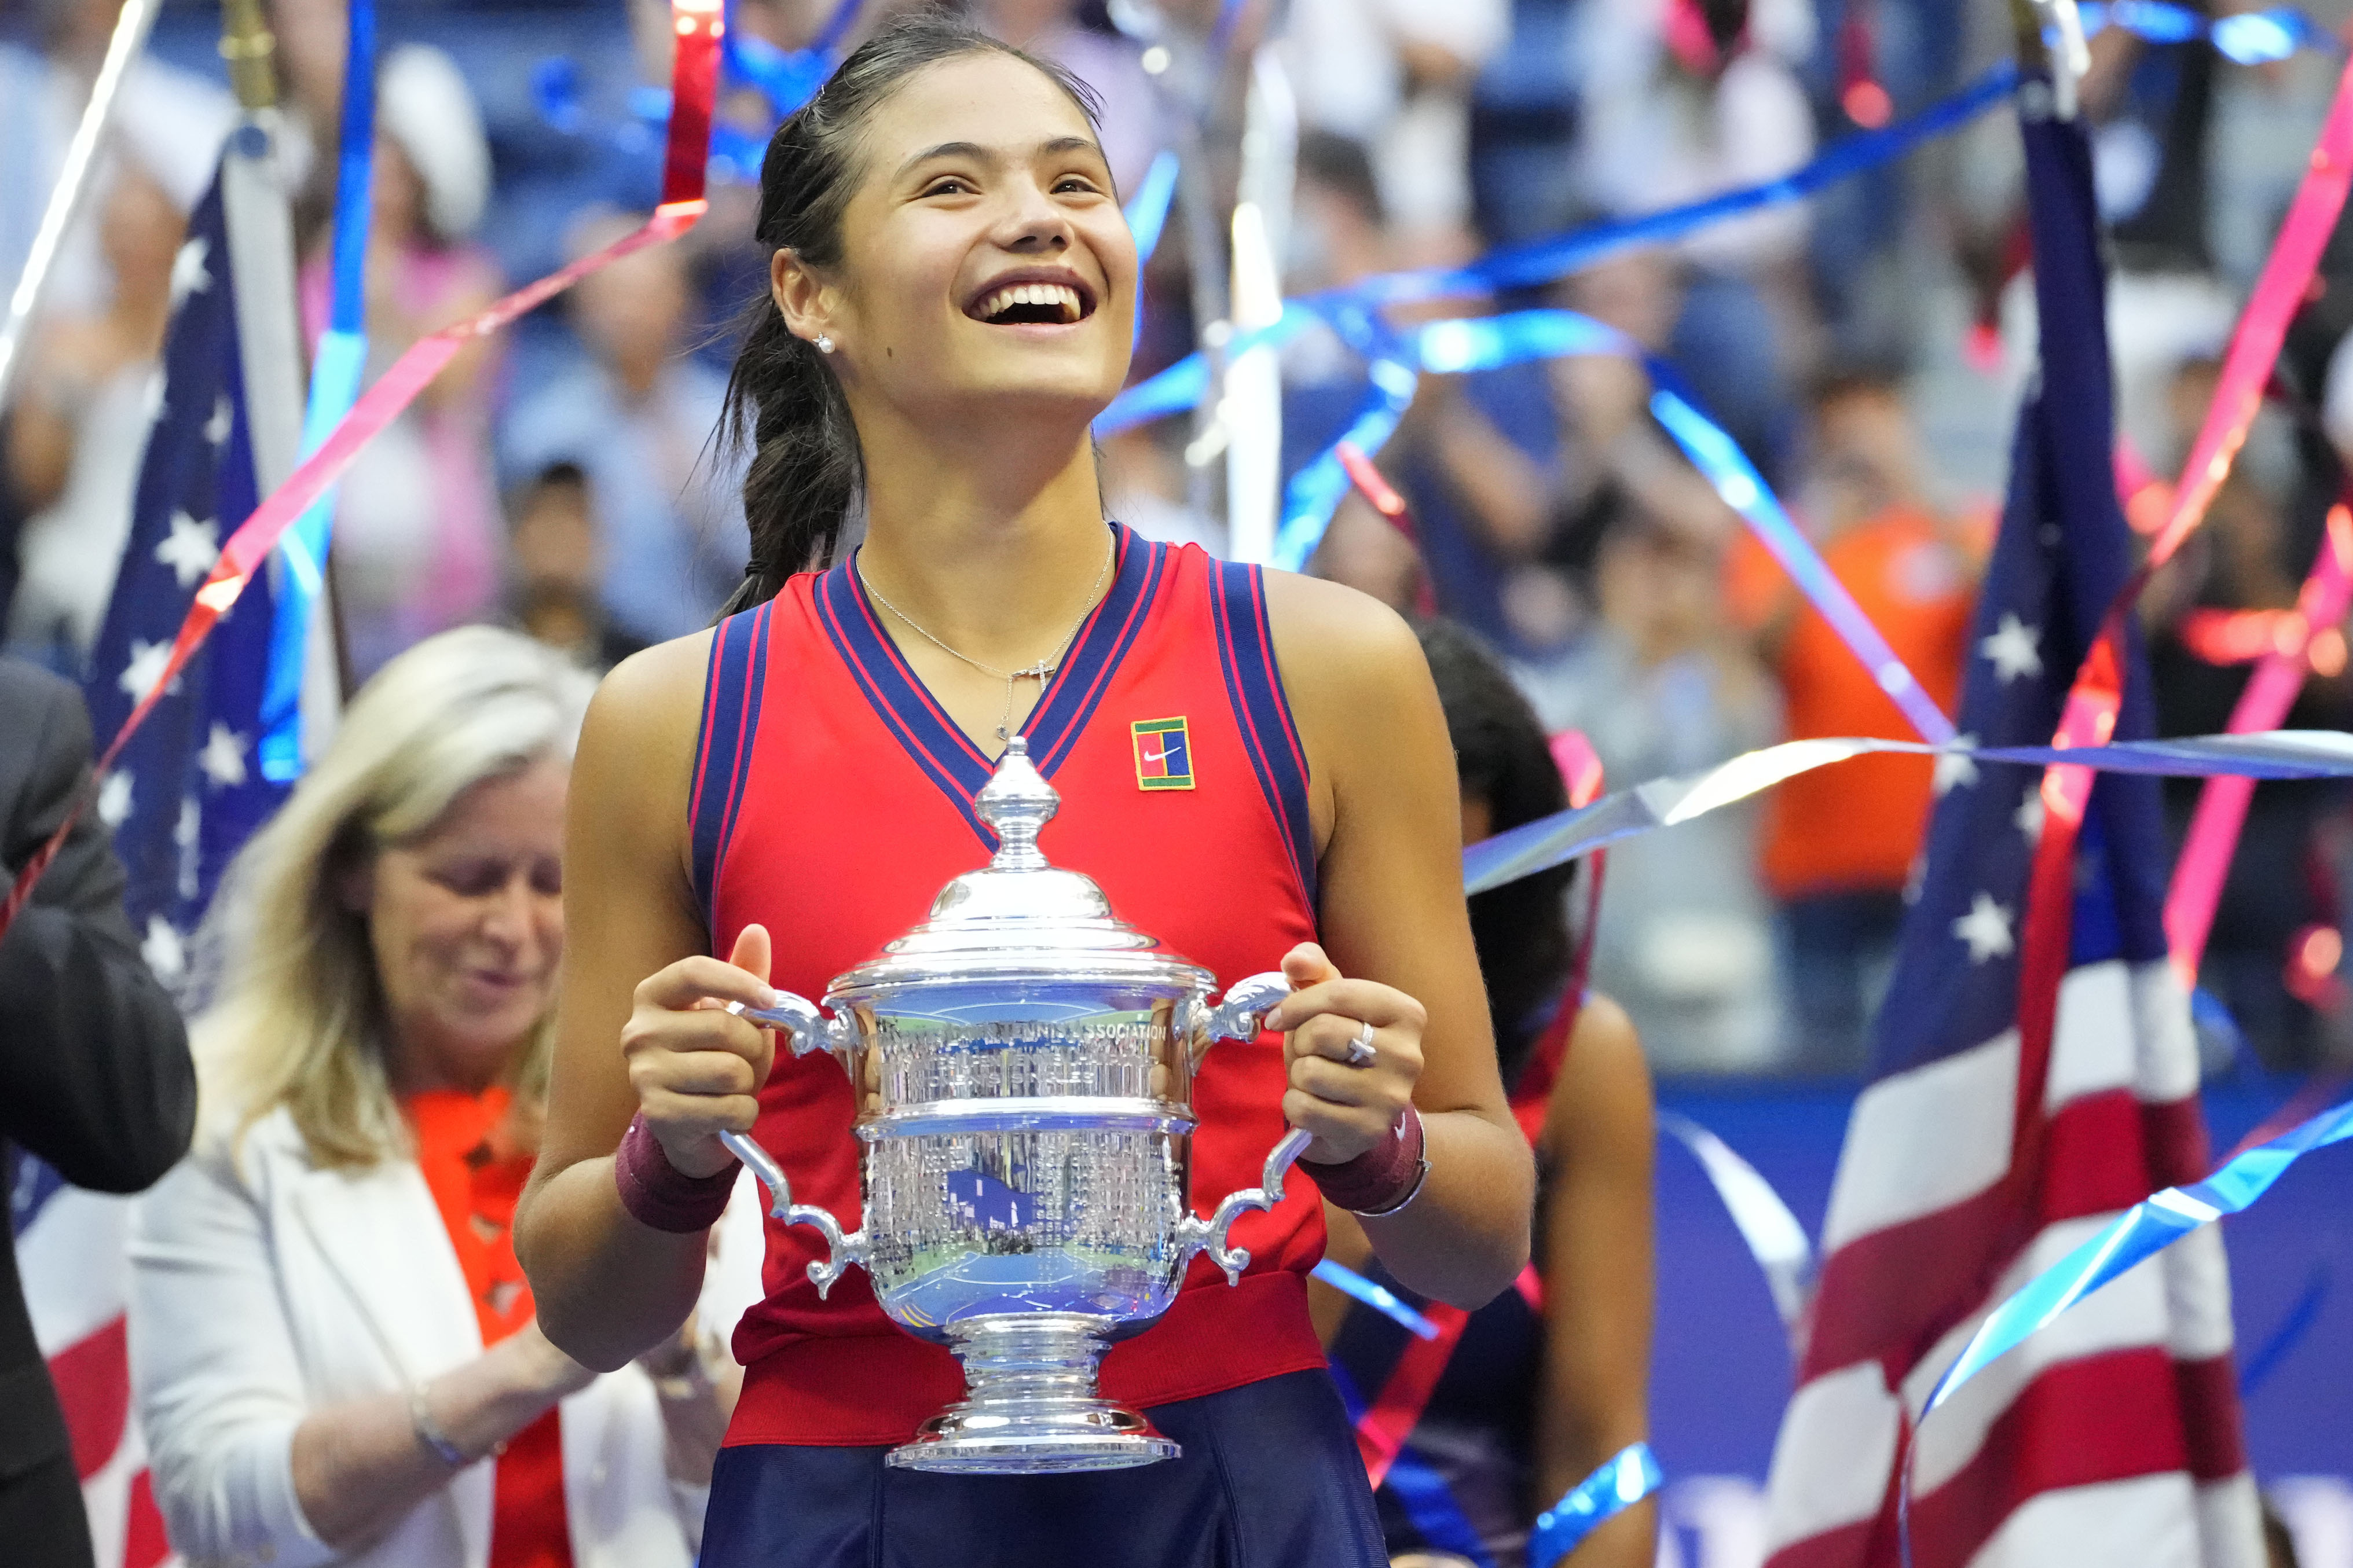 Sep 11, 2021; Flushing, NY, USA; Emma Raducanu of Great Britain celebrates with the championship trophy after her match against Leylah Fernandez of Canada (not pictured) in the women's singles final on day thirteen of the 2021 U.S. Open tennis tournament at USTA Billie Jean King National Tennis Center. Mandatory Credit: Robert Deutsch-USA TODAY Sports